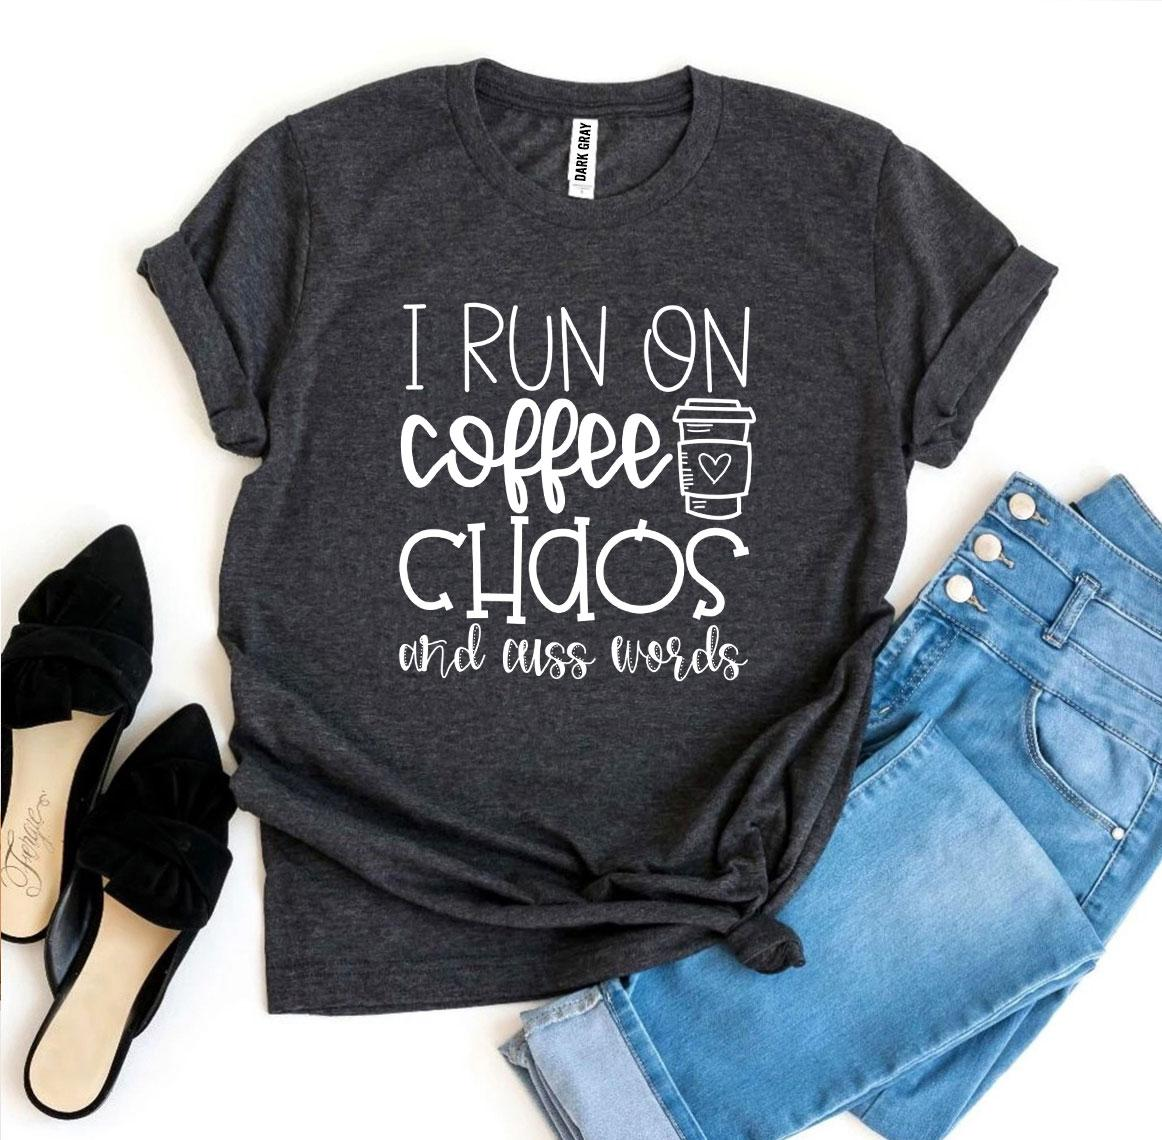 I Run On Coffee Chaos And Cuss Words T-shirt - Cream and Sugar Coffee House & Brewing Co.